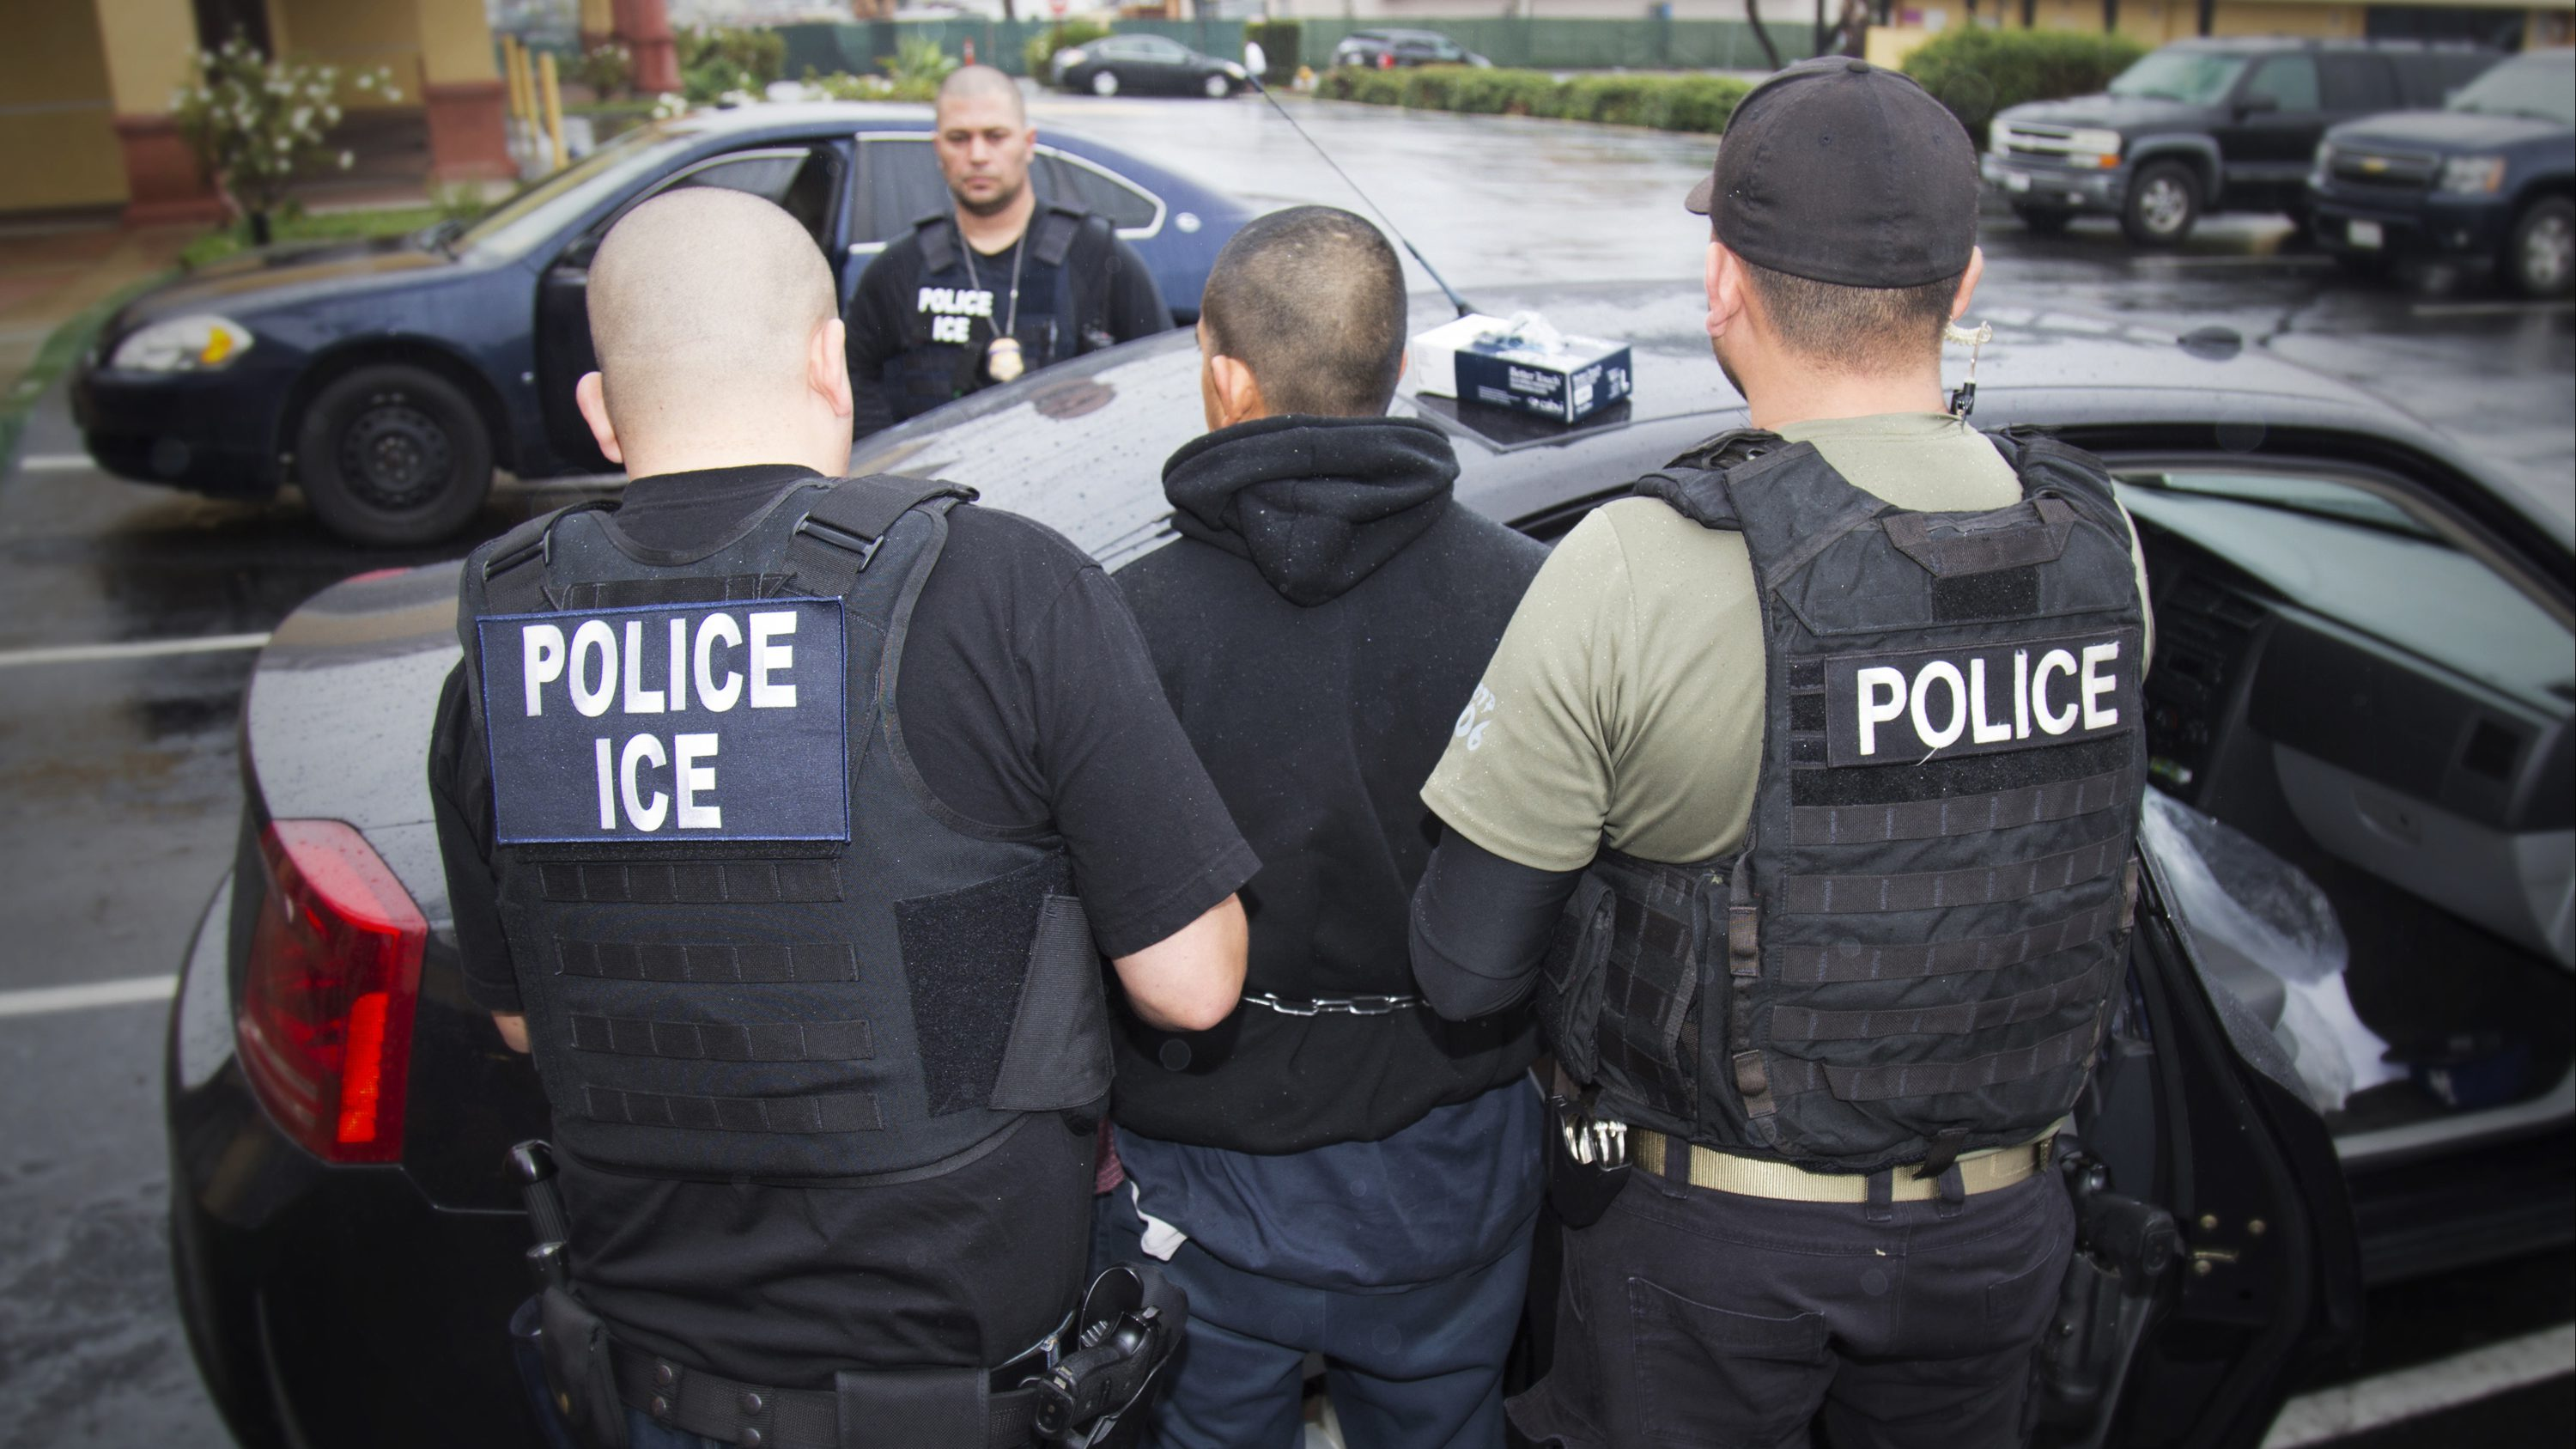 U.S. Immigration and Customs Enforcement, foreign nationals